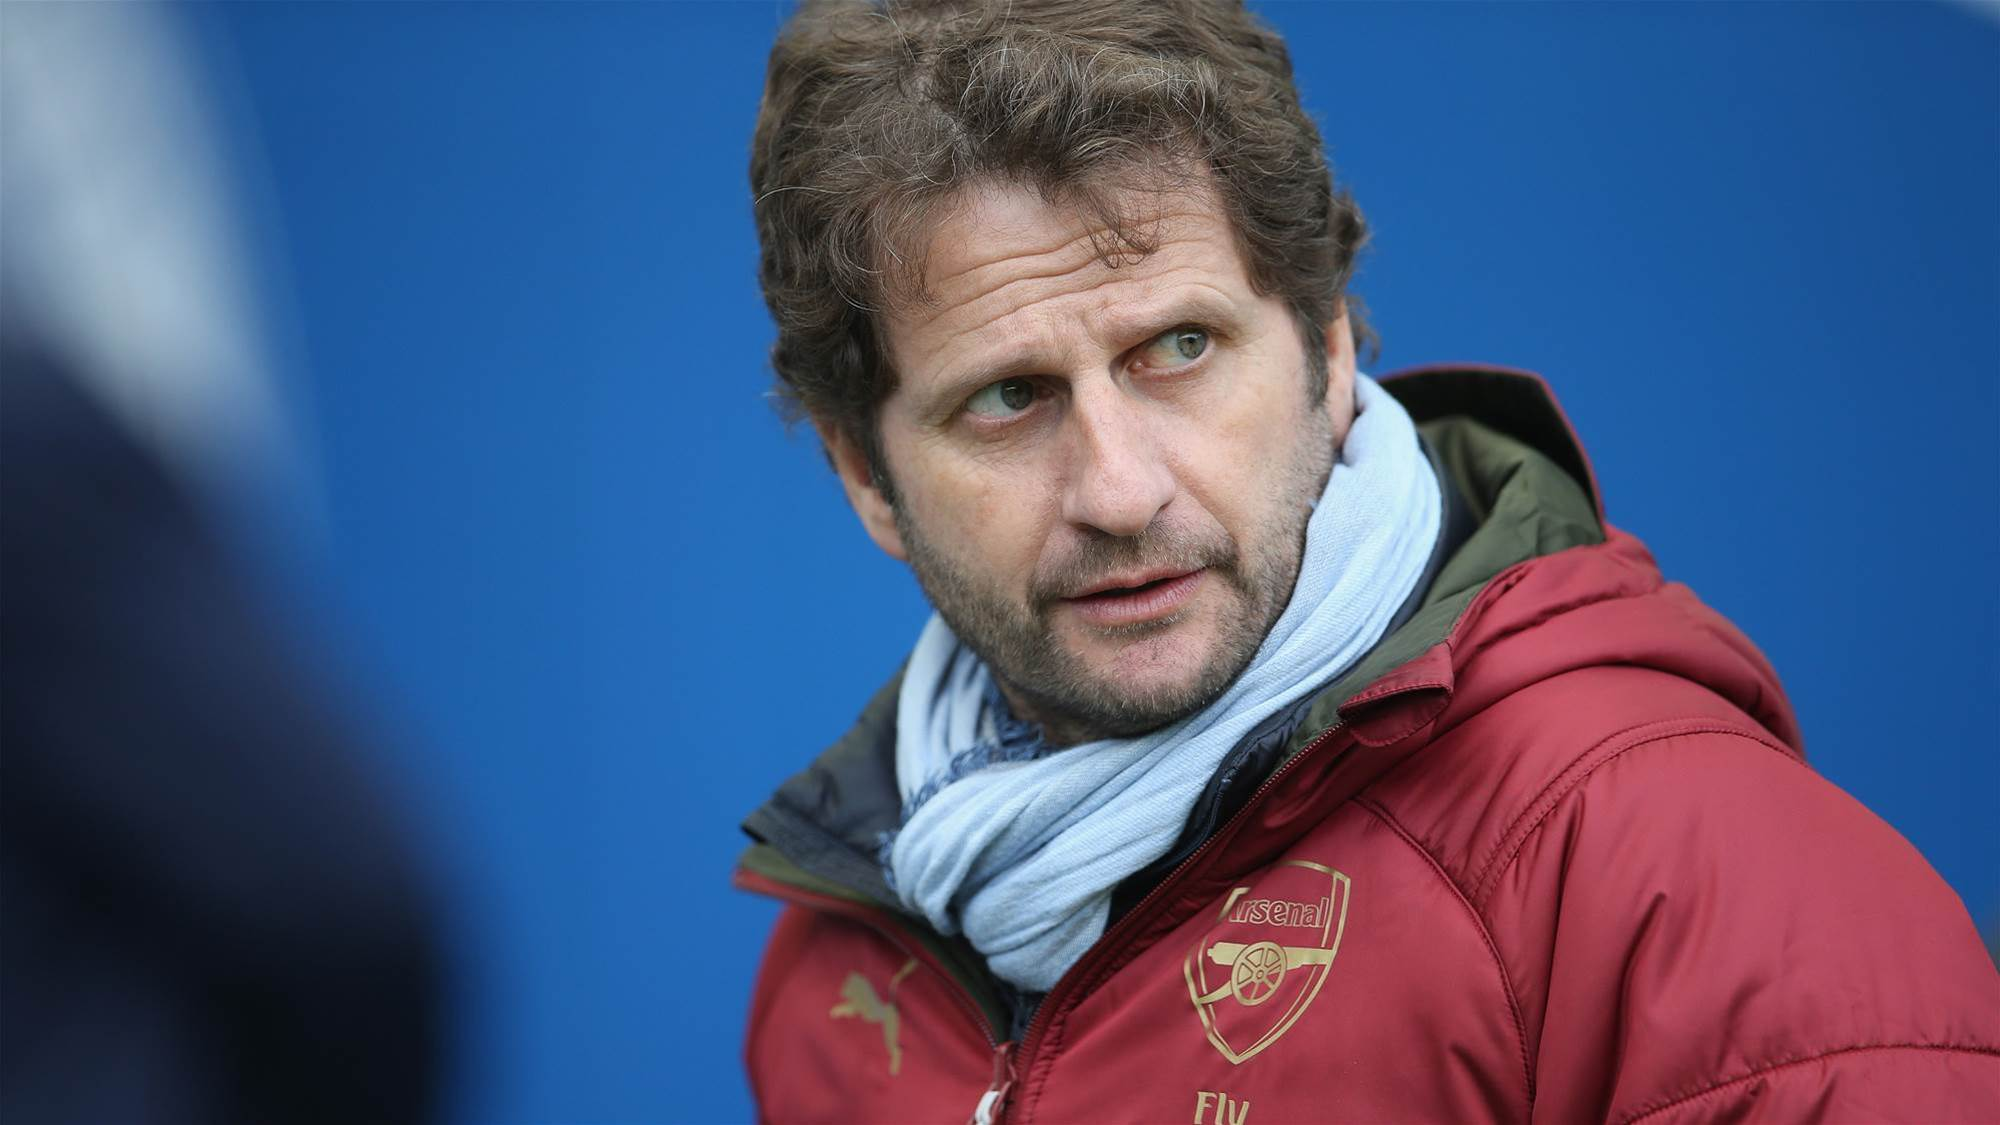 Montemurro leads Arsenal to FAWSL title